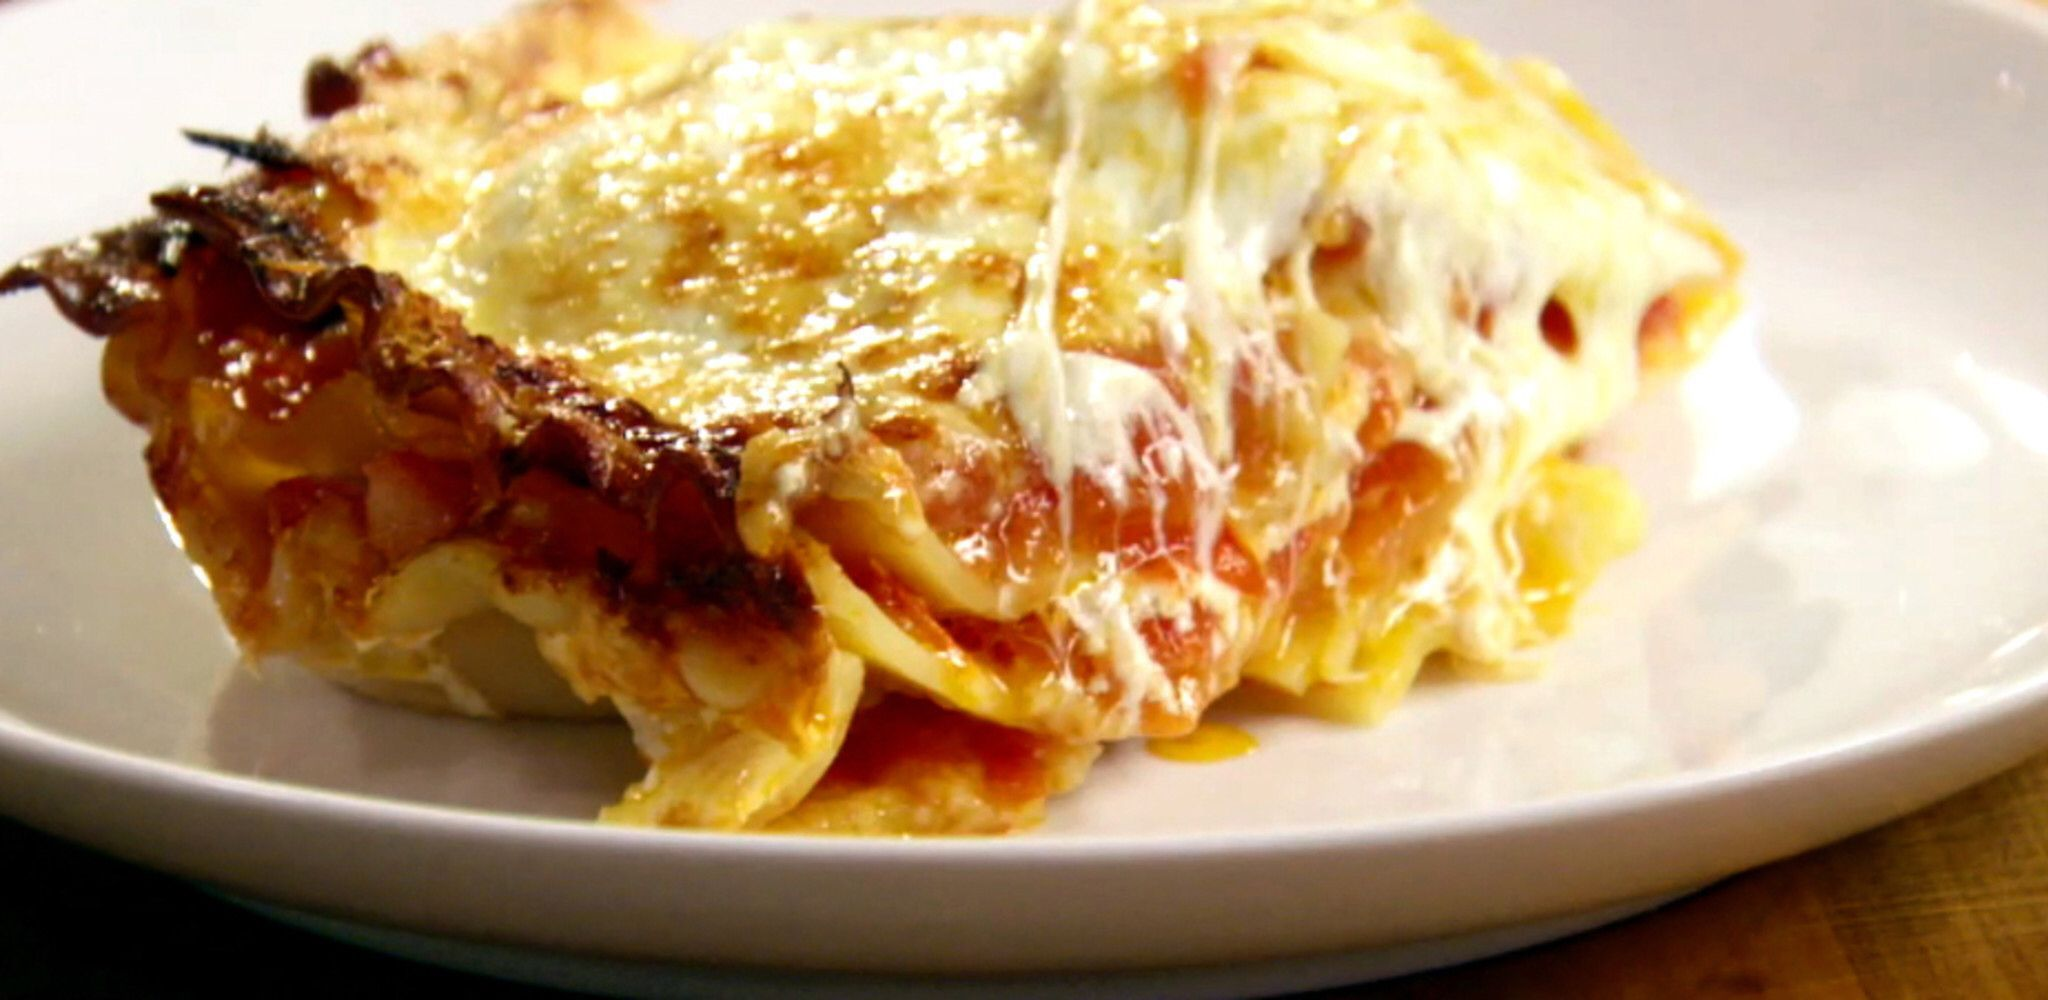 Old School Lasagna with Bolognese Sauce #bolognesesauce Old School Lasagna with Bolognese Sauce by Alex Guarnaschelli #bolognesesauce Old School Lasagna with Bolognese Sauce #bolognesesauce Old School Lasagna with Bolognese Sauce by Alex Guarnaschelli #bolognesesauce Old School Lasagna with Bolognese Sauce #bolognesesauce Old School Lasagna with Bolognese Sauce by Alex Guarnaschelli #bolognesesauce Old School Lasagna with Bolognese Sauce #bolognesesauce Old School Lasagna with Bolognese Sauce by #bolognesesauce